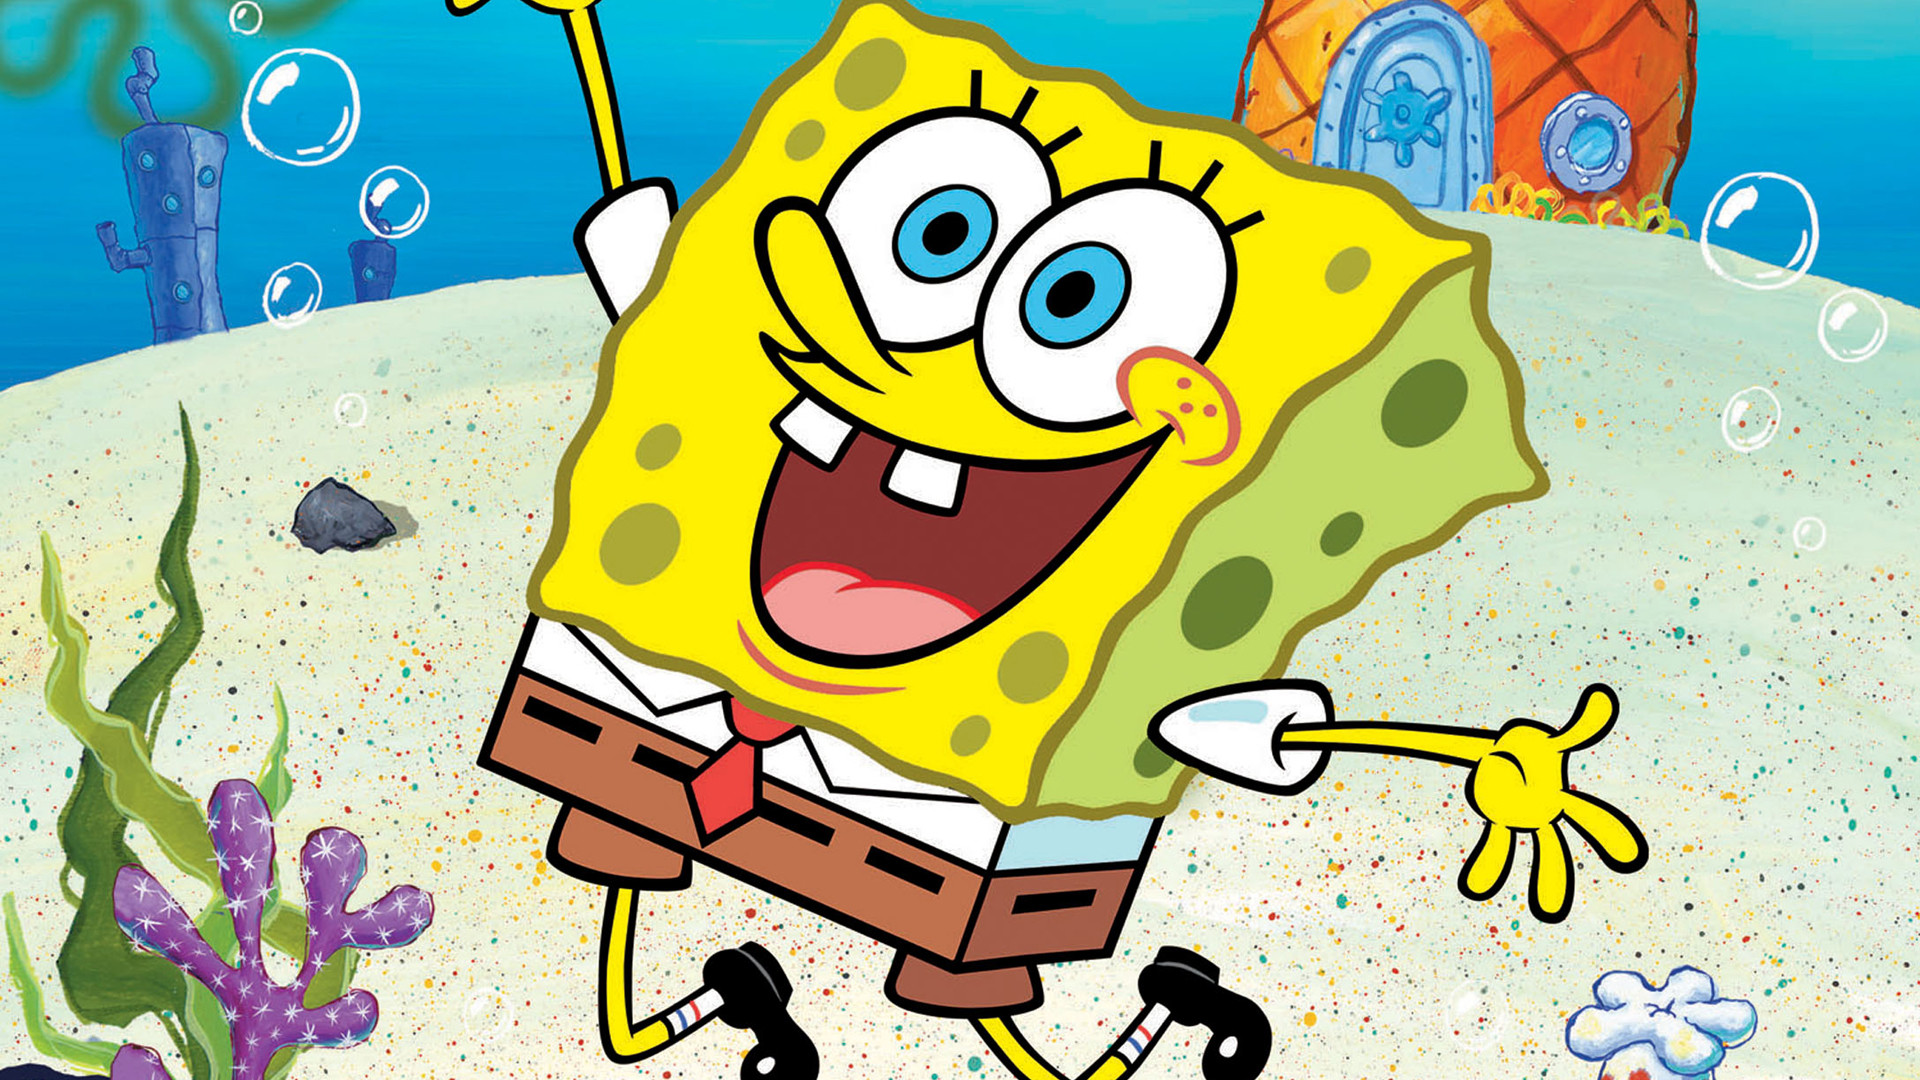 1920x1080 Spongebob Squarepants HD 7909